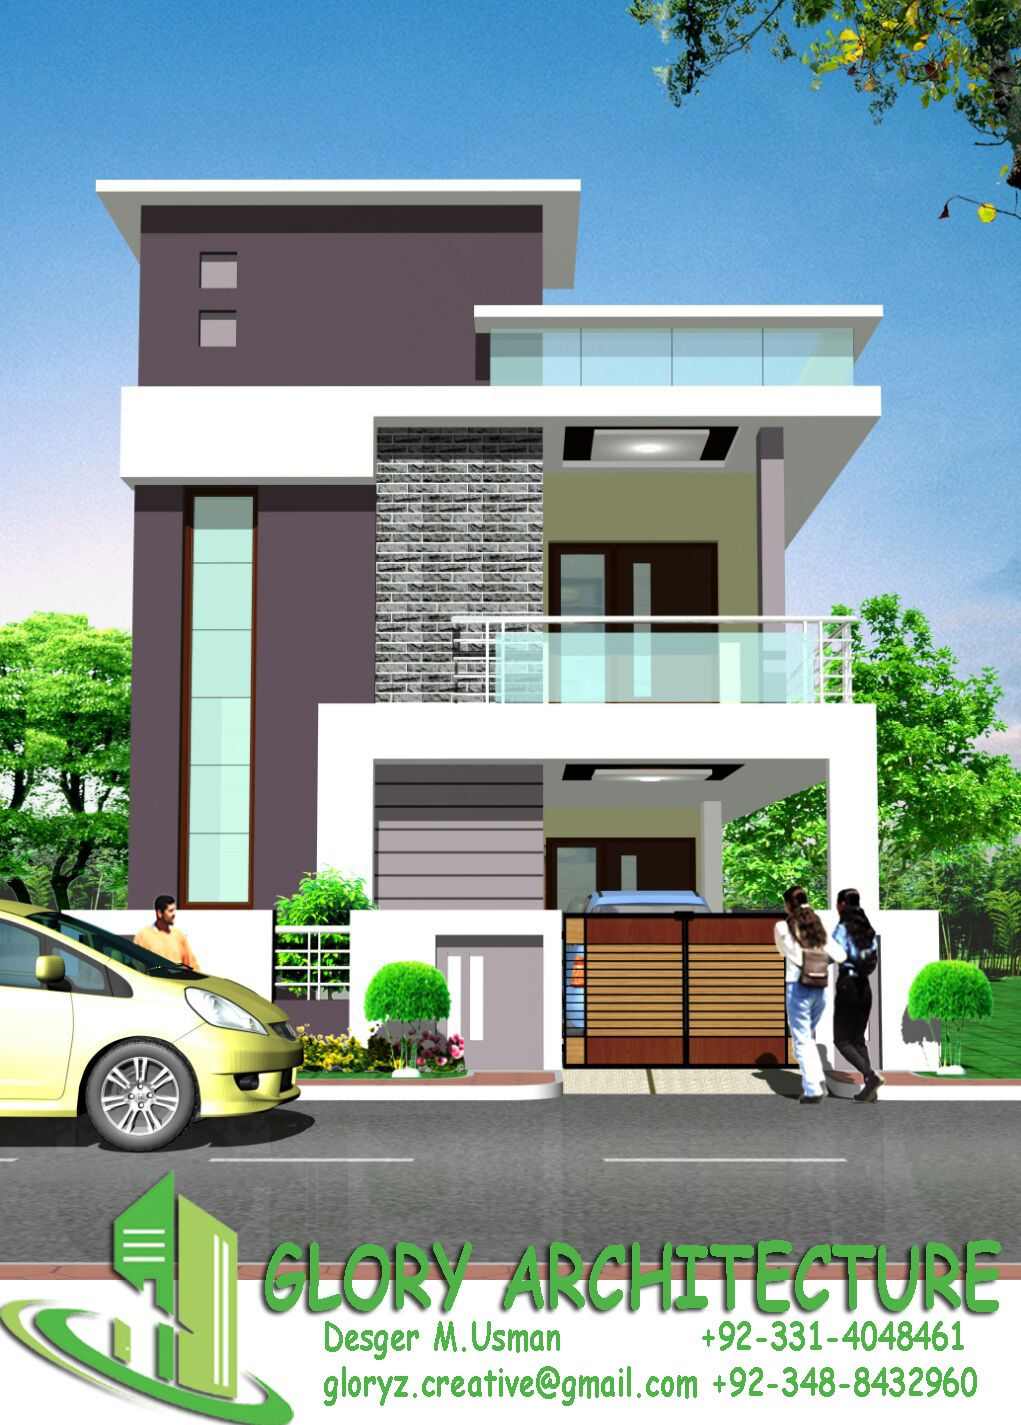 House Front Design House Design Front Elevation Designs: House Elevation, Independent House, House Front Design